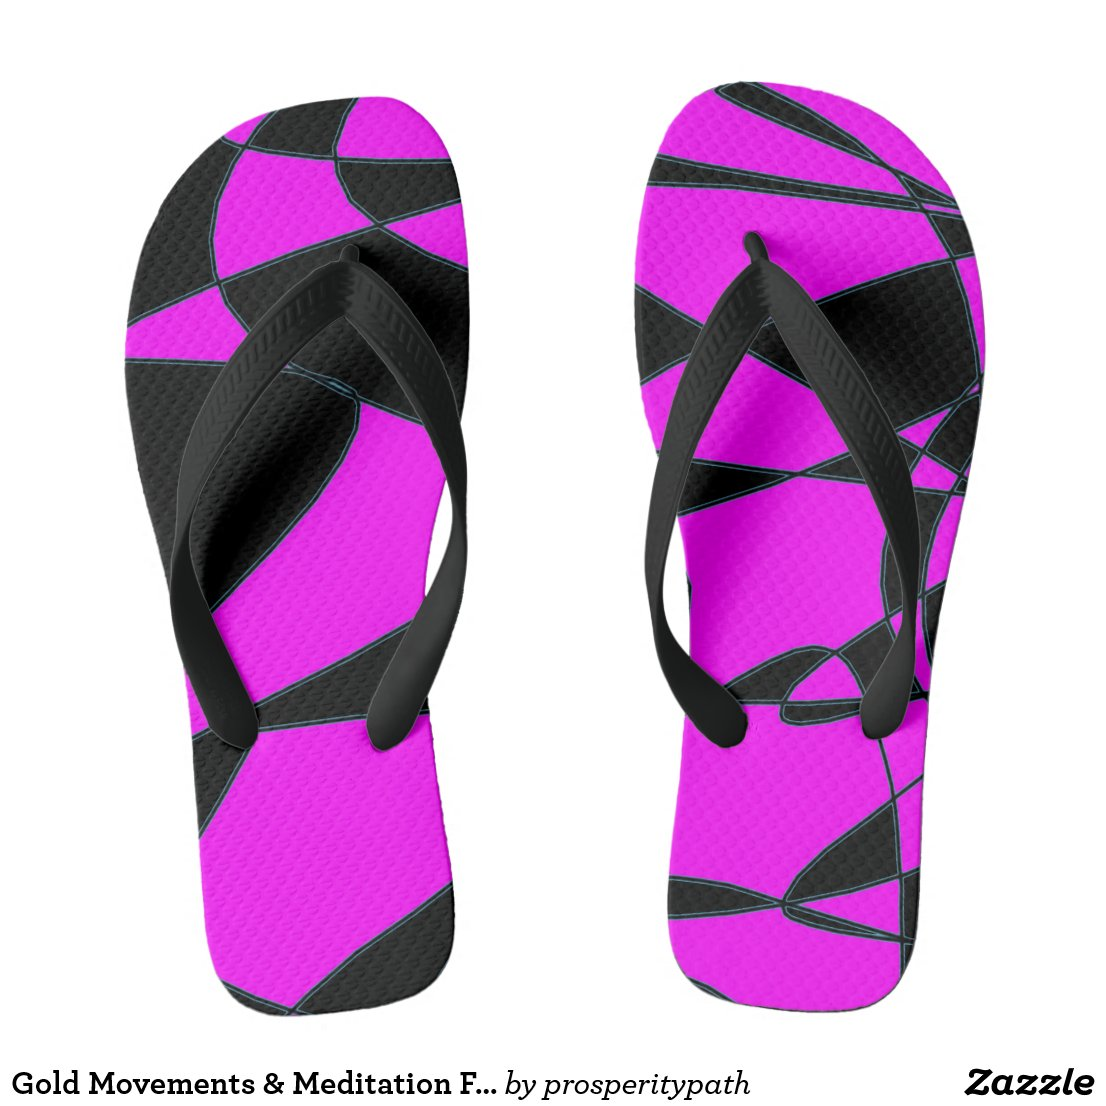 Gold Movements & Meditation Flip-Flops Flip Flops